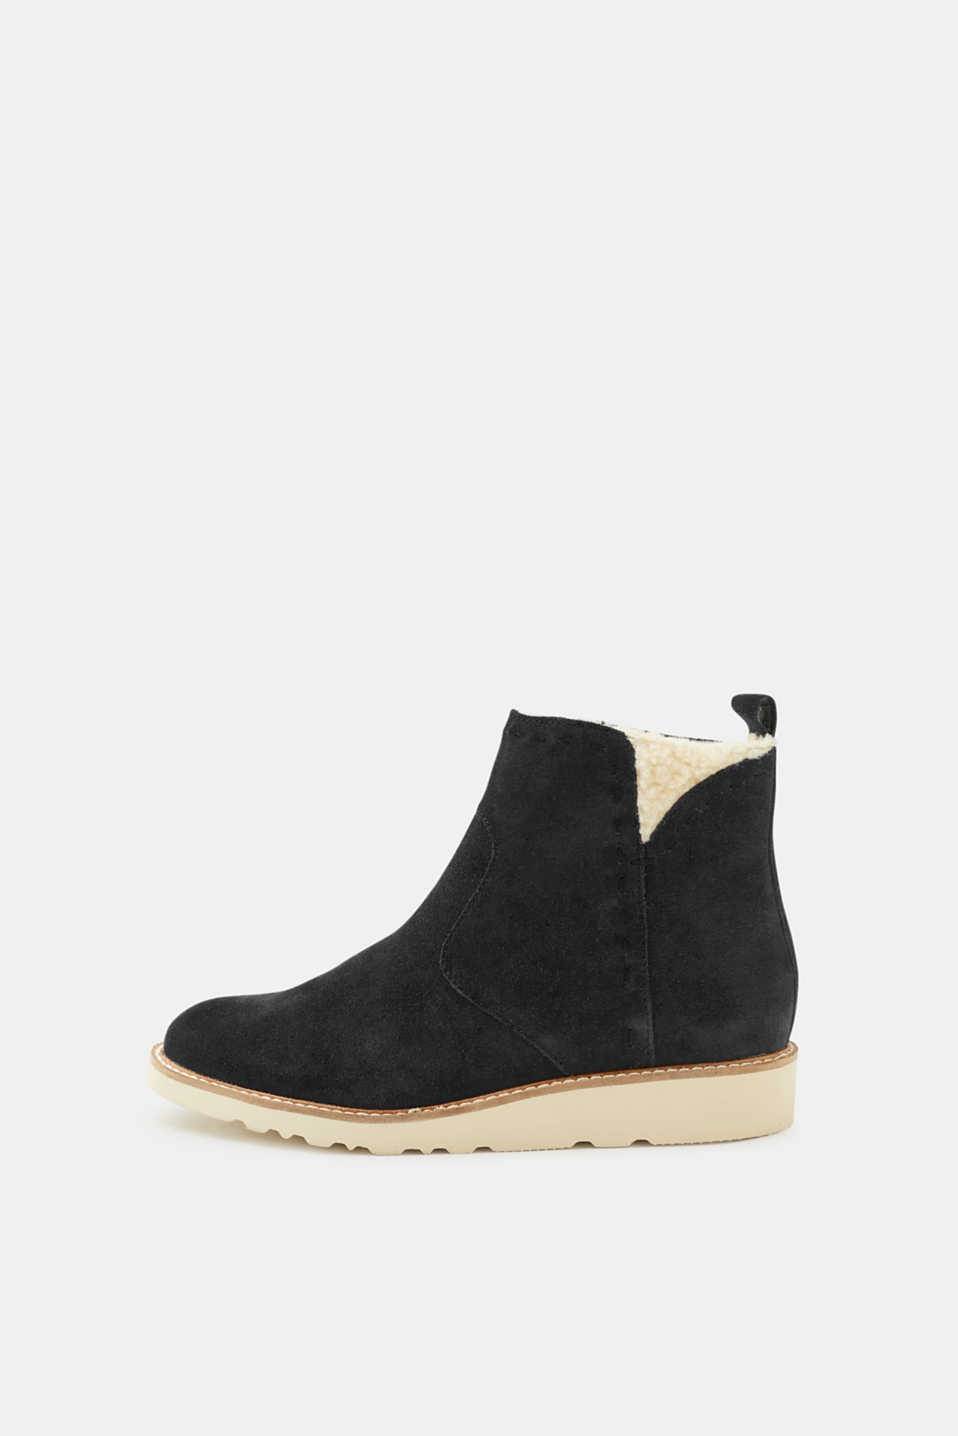 Esprit - Leather boots with teddy fur lining